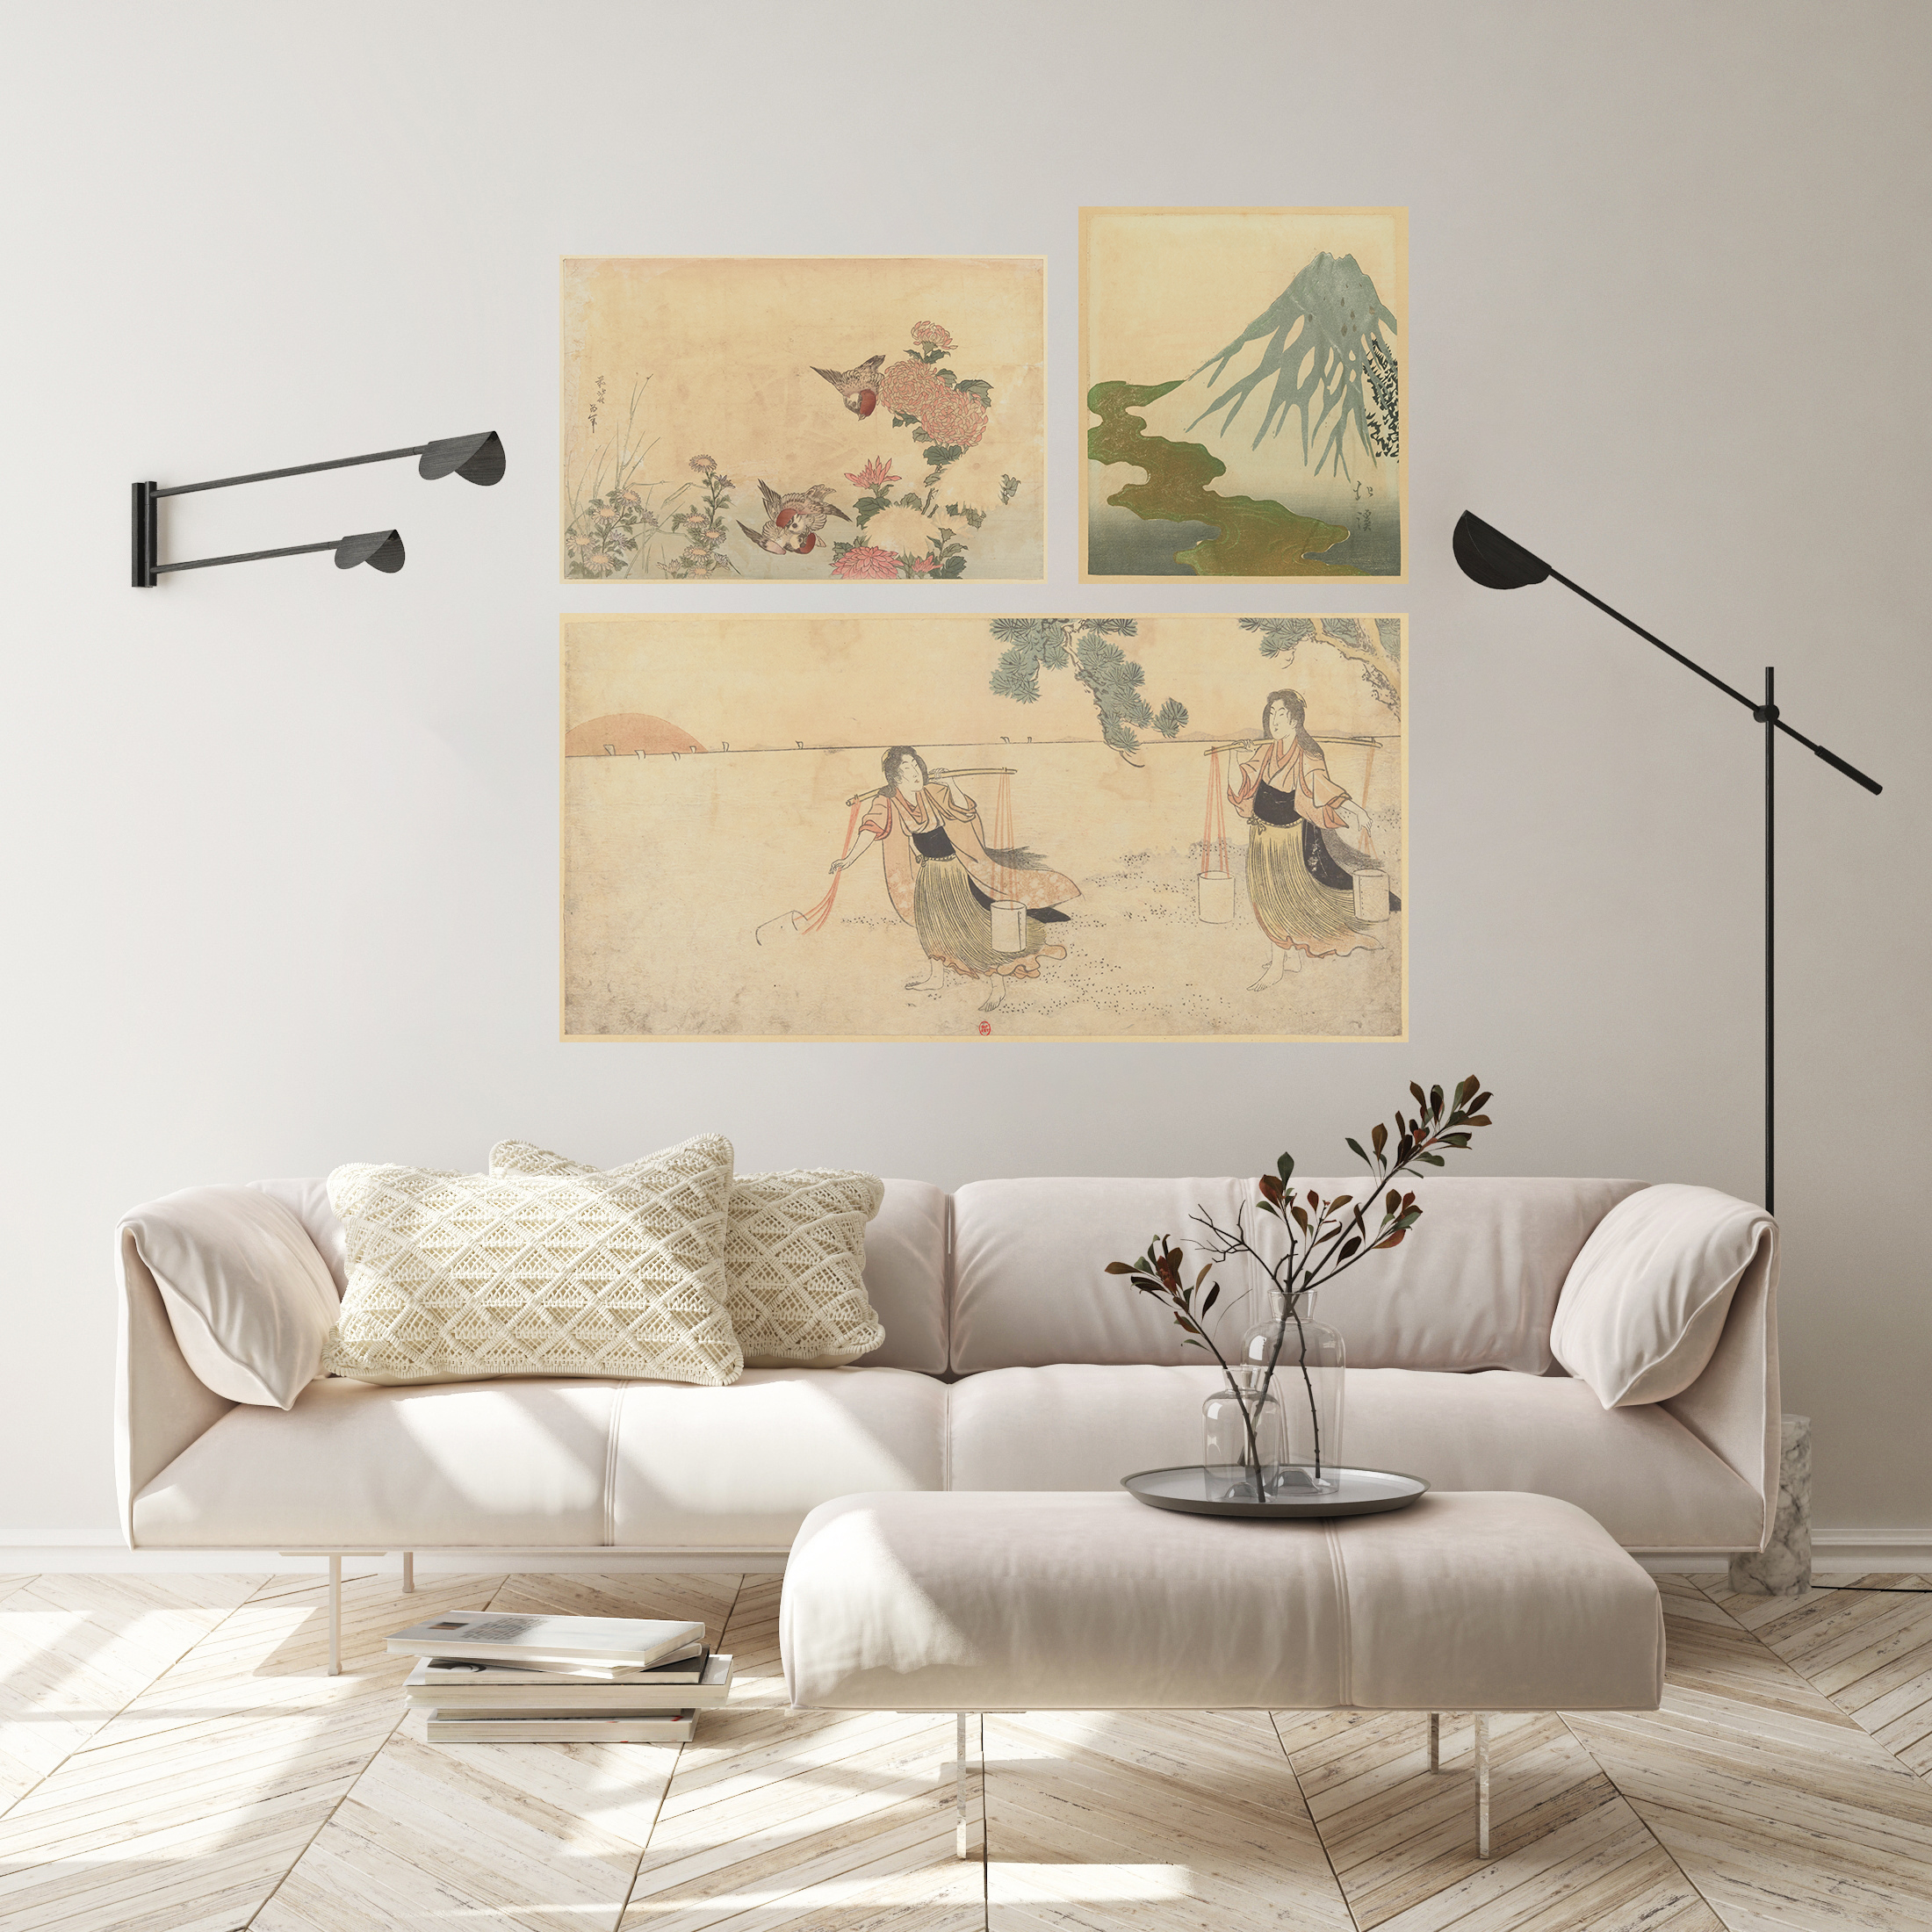 Triptych of Japanese prints, on adhesive canvas placed on the wall of a bright contemporary living room.